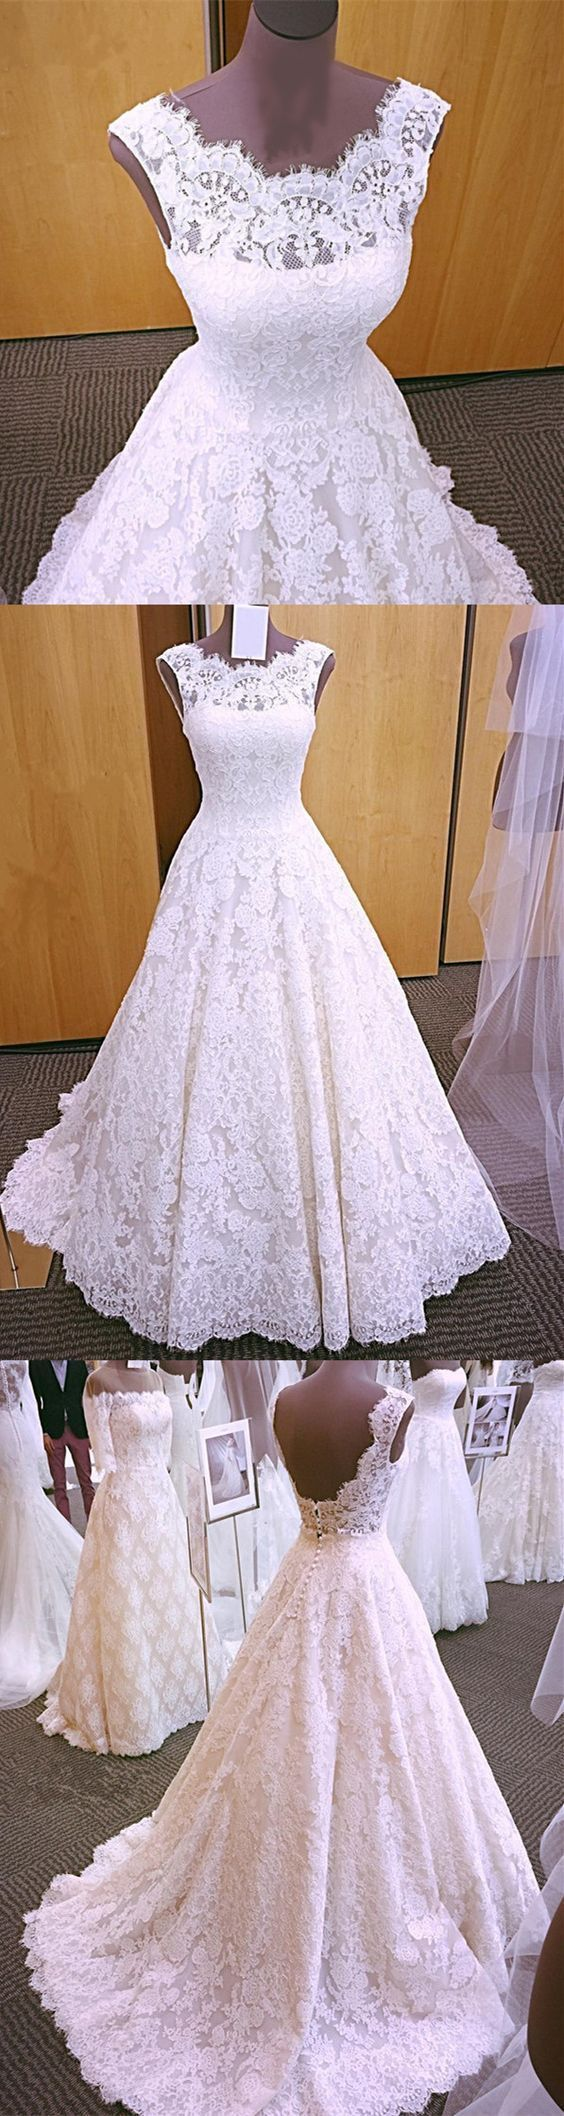 Elegant White Appliques Lace A Line Formal Wedding Dresses Bridal Gown